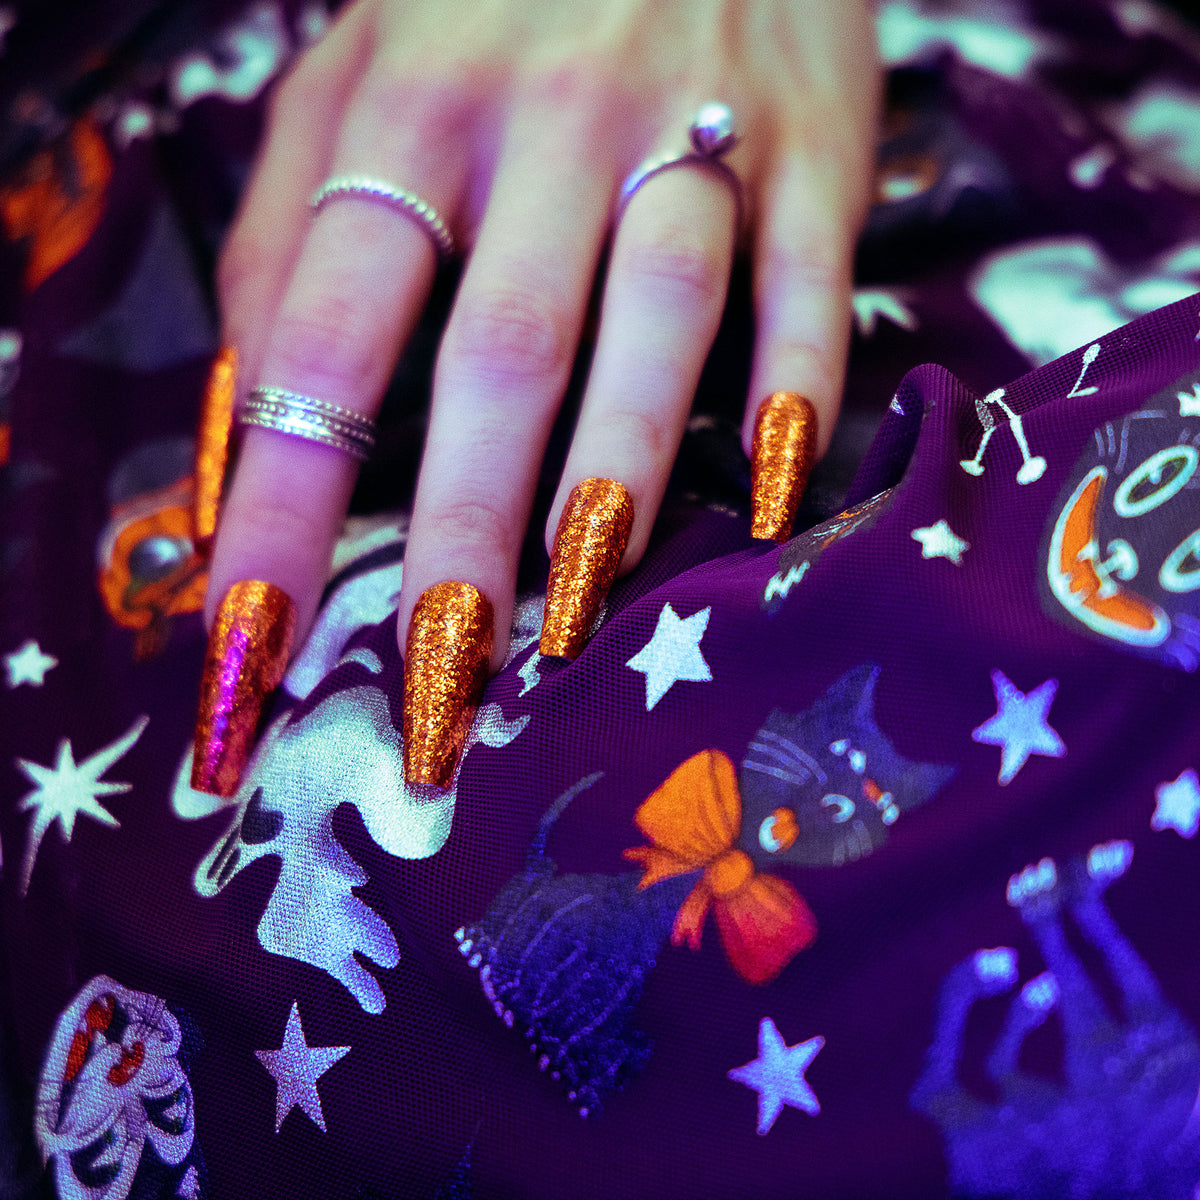 HALLOWEEN II COLLECTION - BlackMilk x I Scream Nails